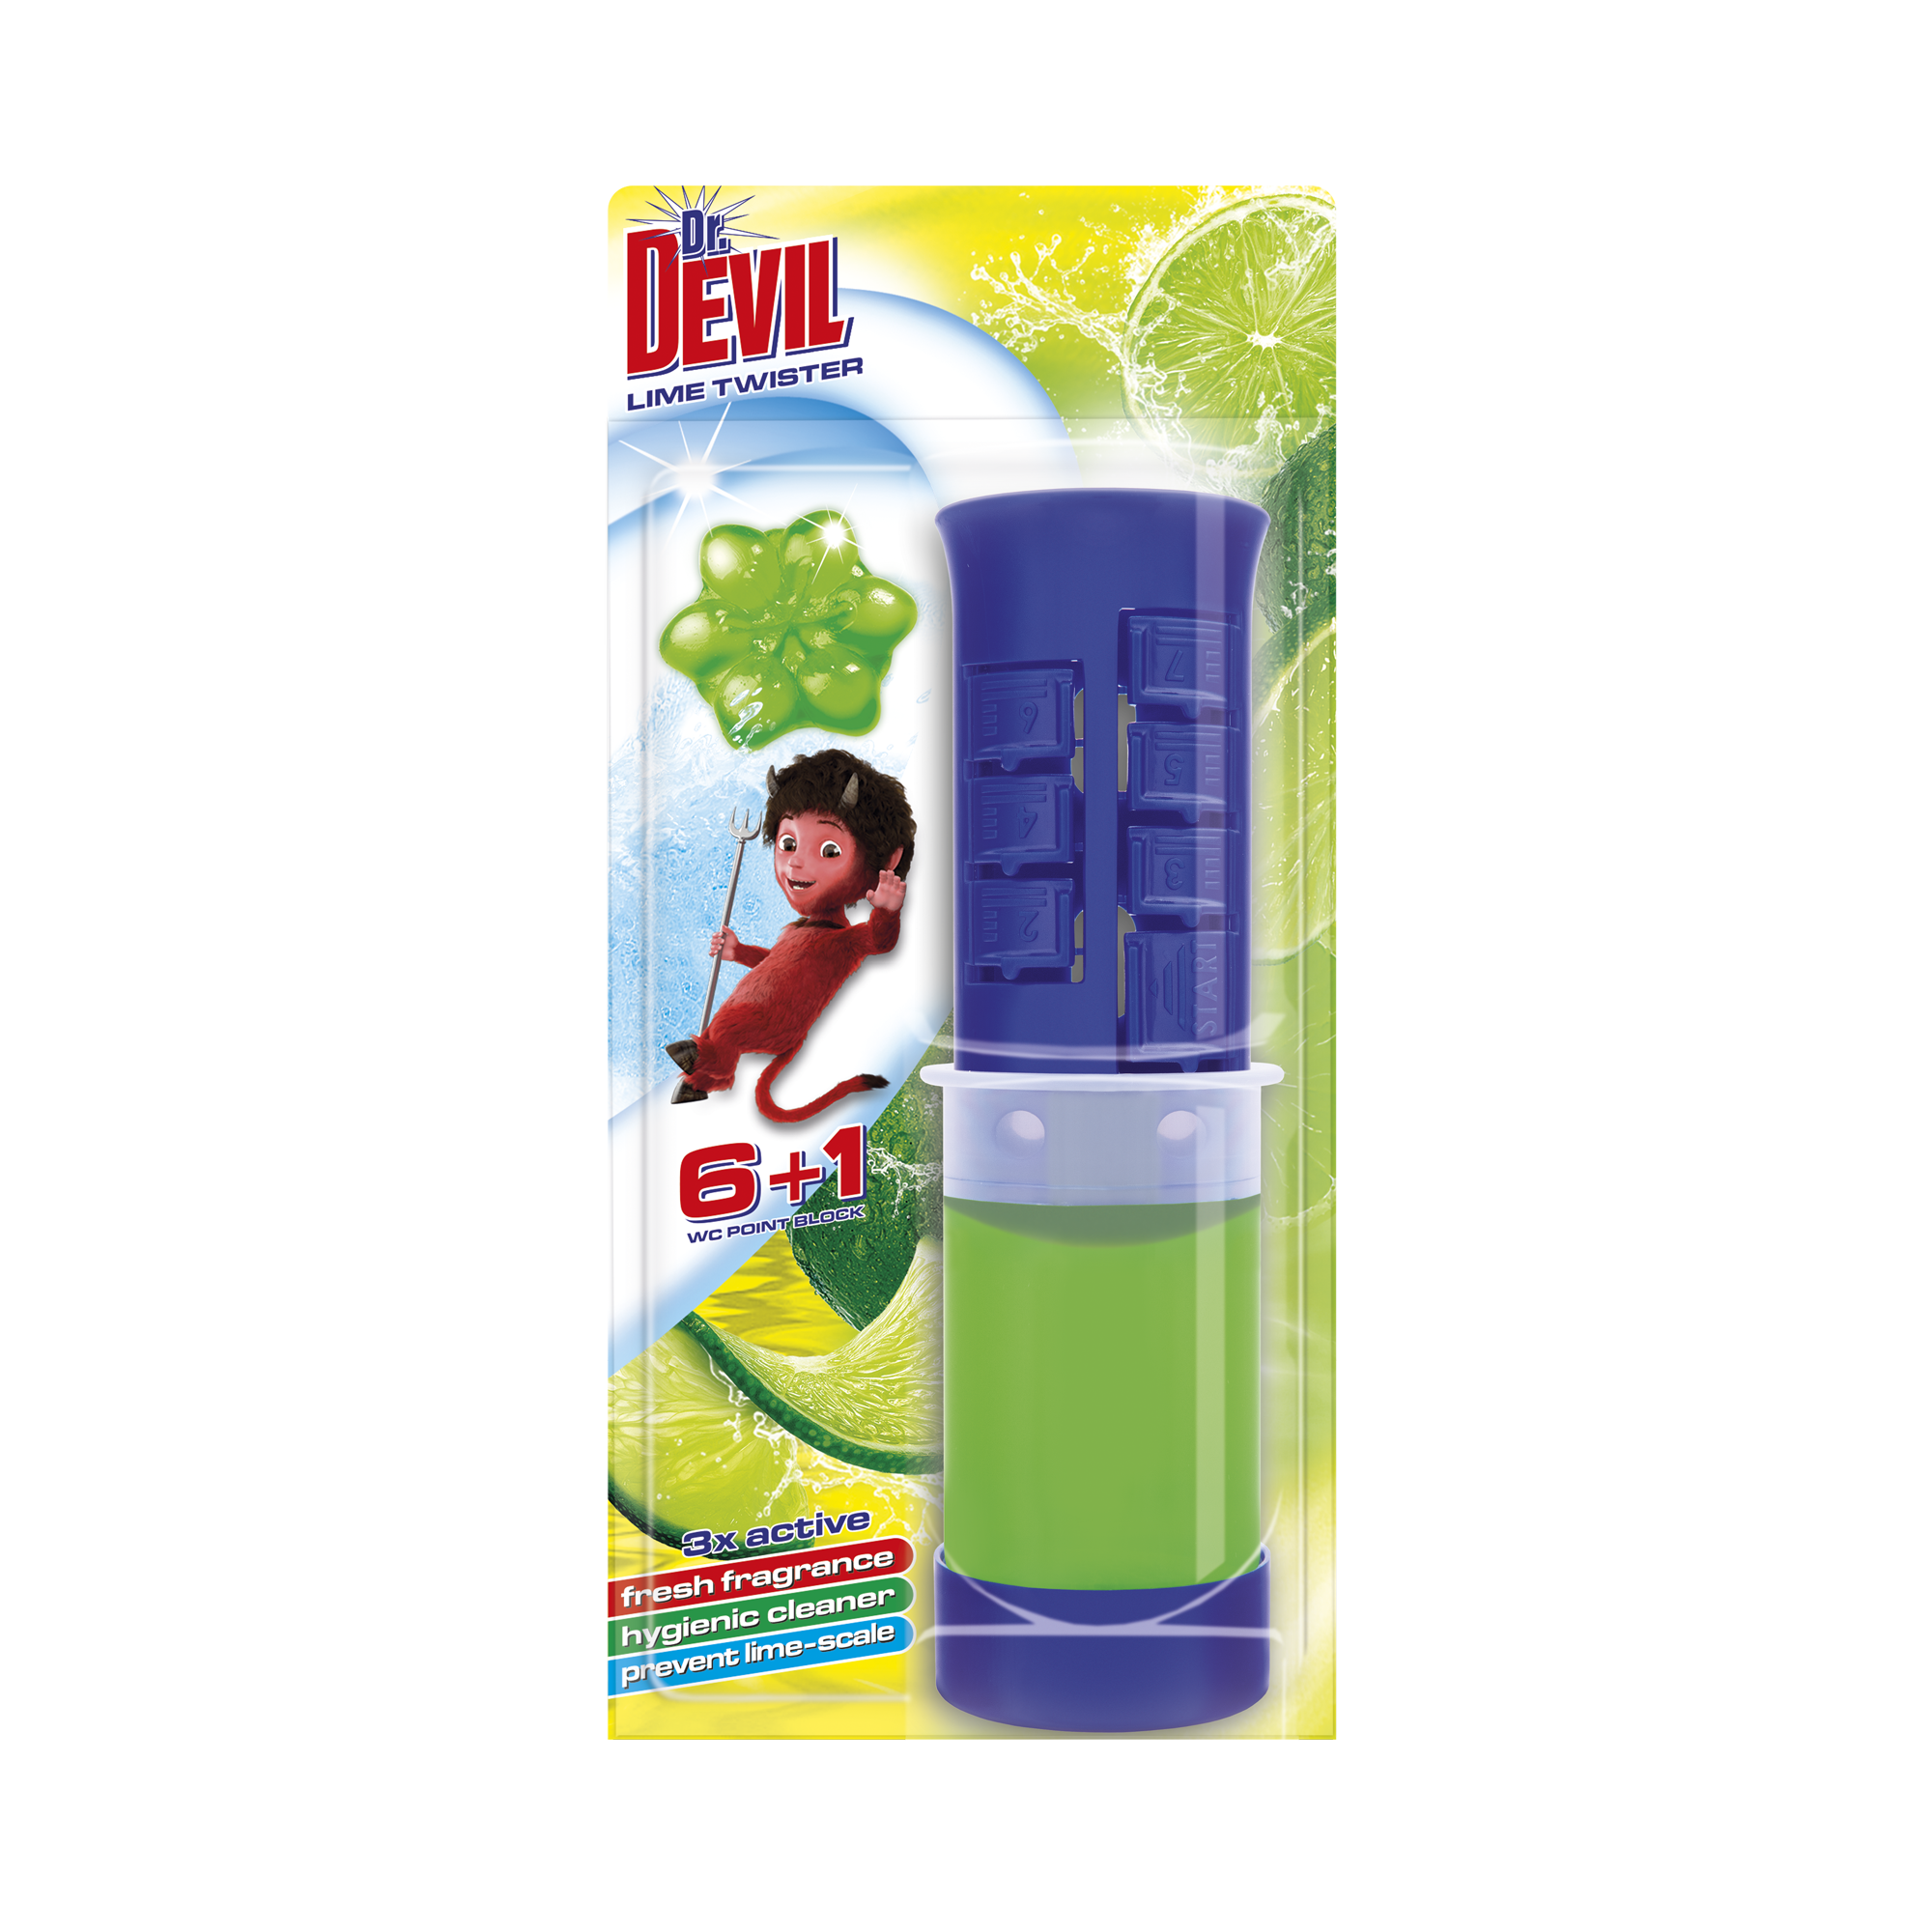 Dr. Devil 3in1 WC Point block Lime Twister